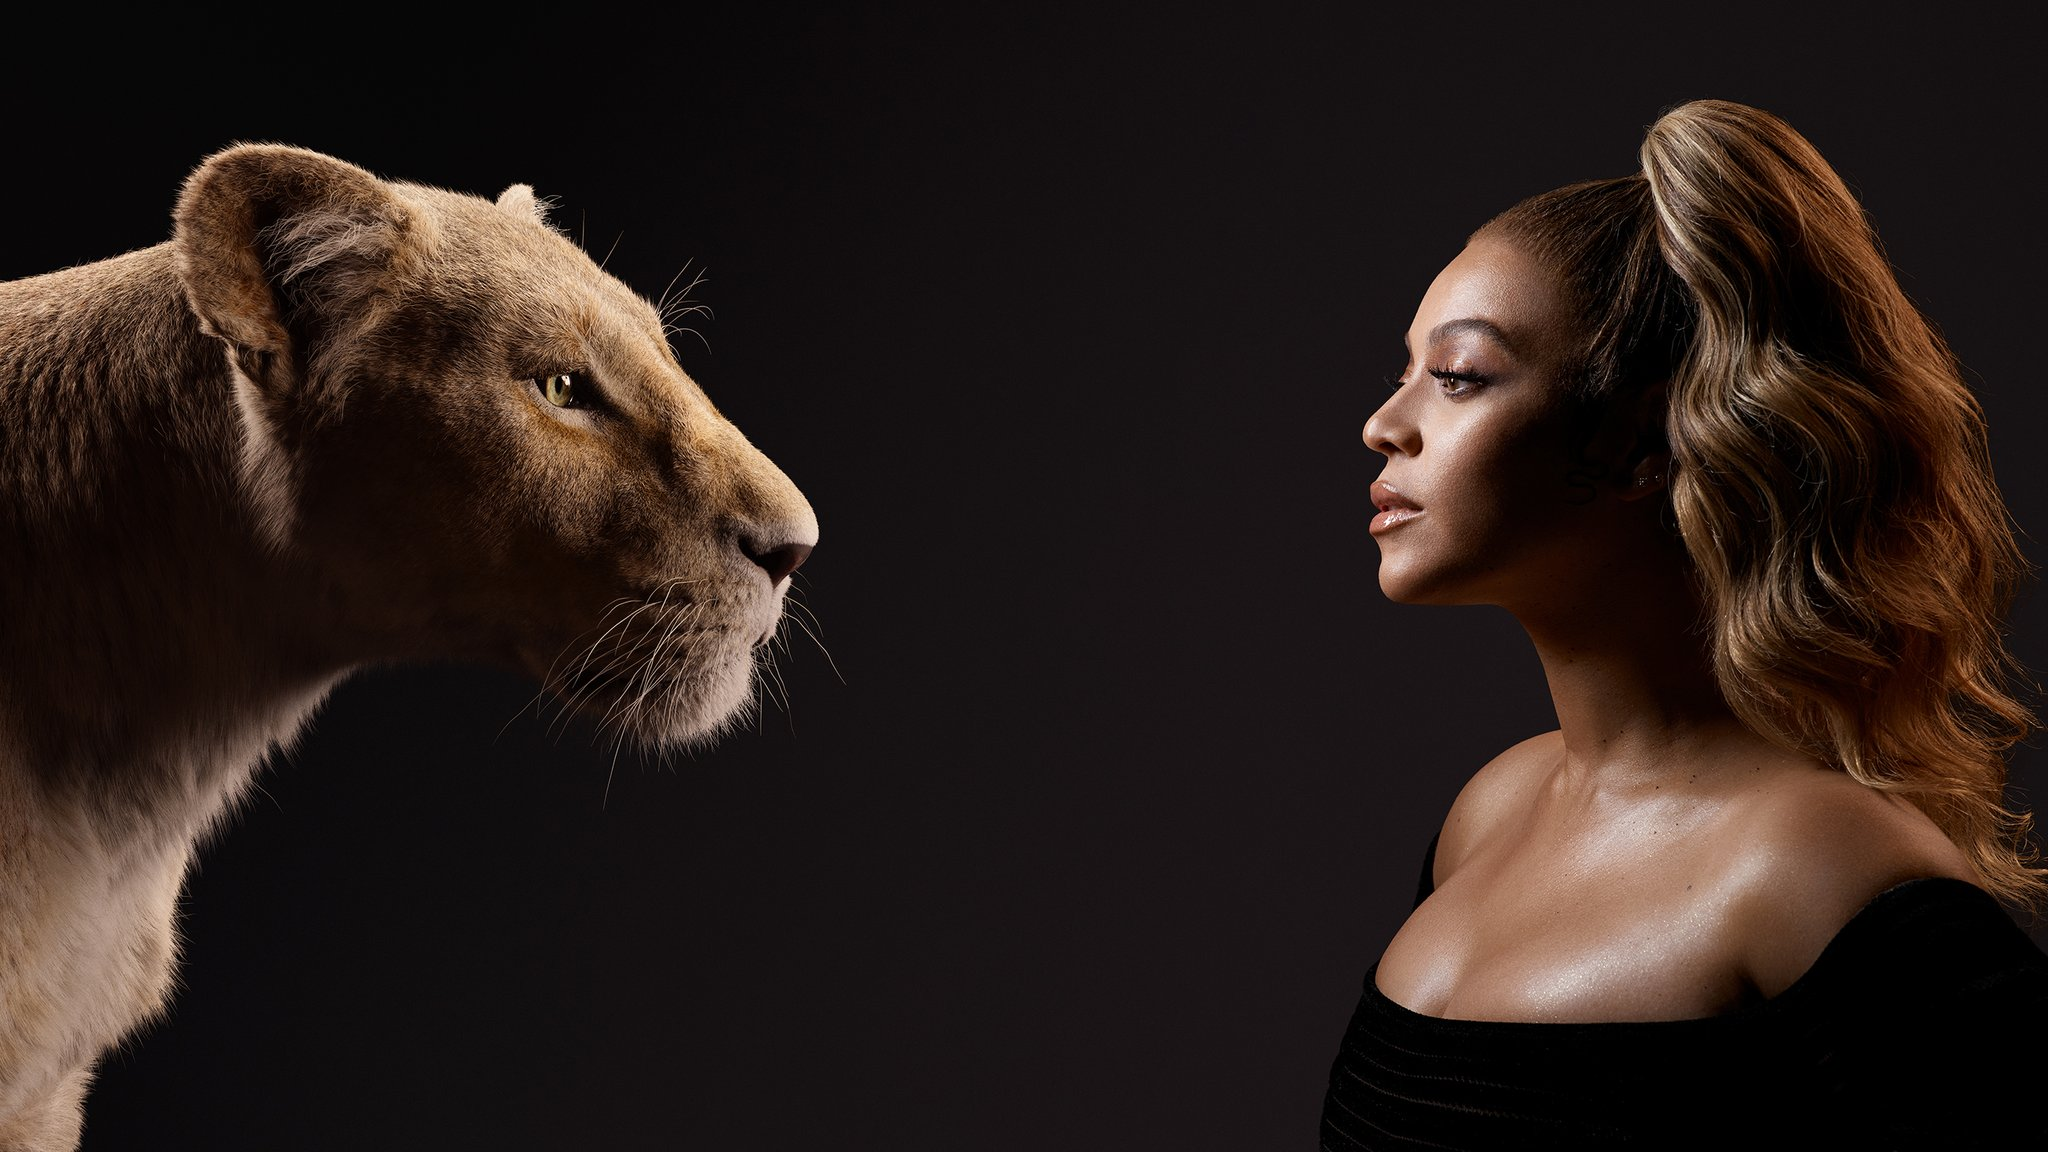 The Lion King Pride 02 - Beyonce Knowles Nala